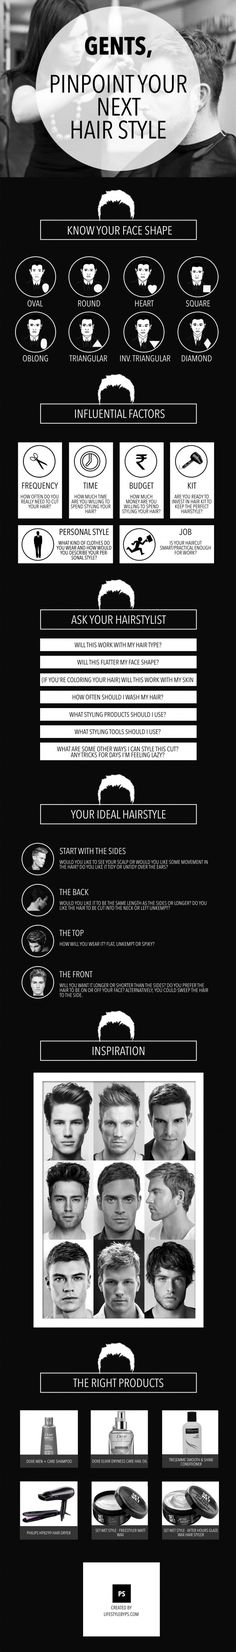 Style Tips: Picking A New Men's Hairstyle. ===> Follow us on Pinterest for Style Tips, Men's Essentials, updates on our SALES etc... ~ VujuWear